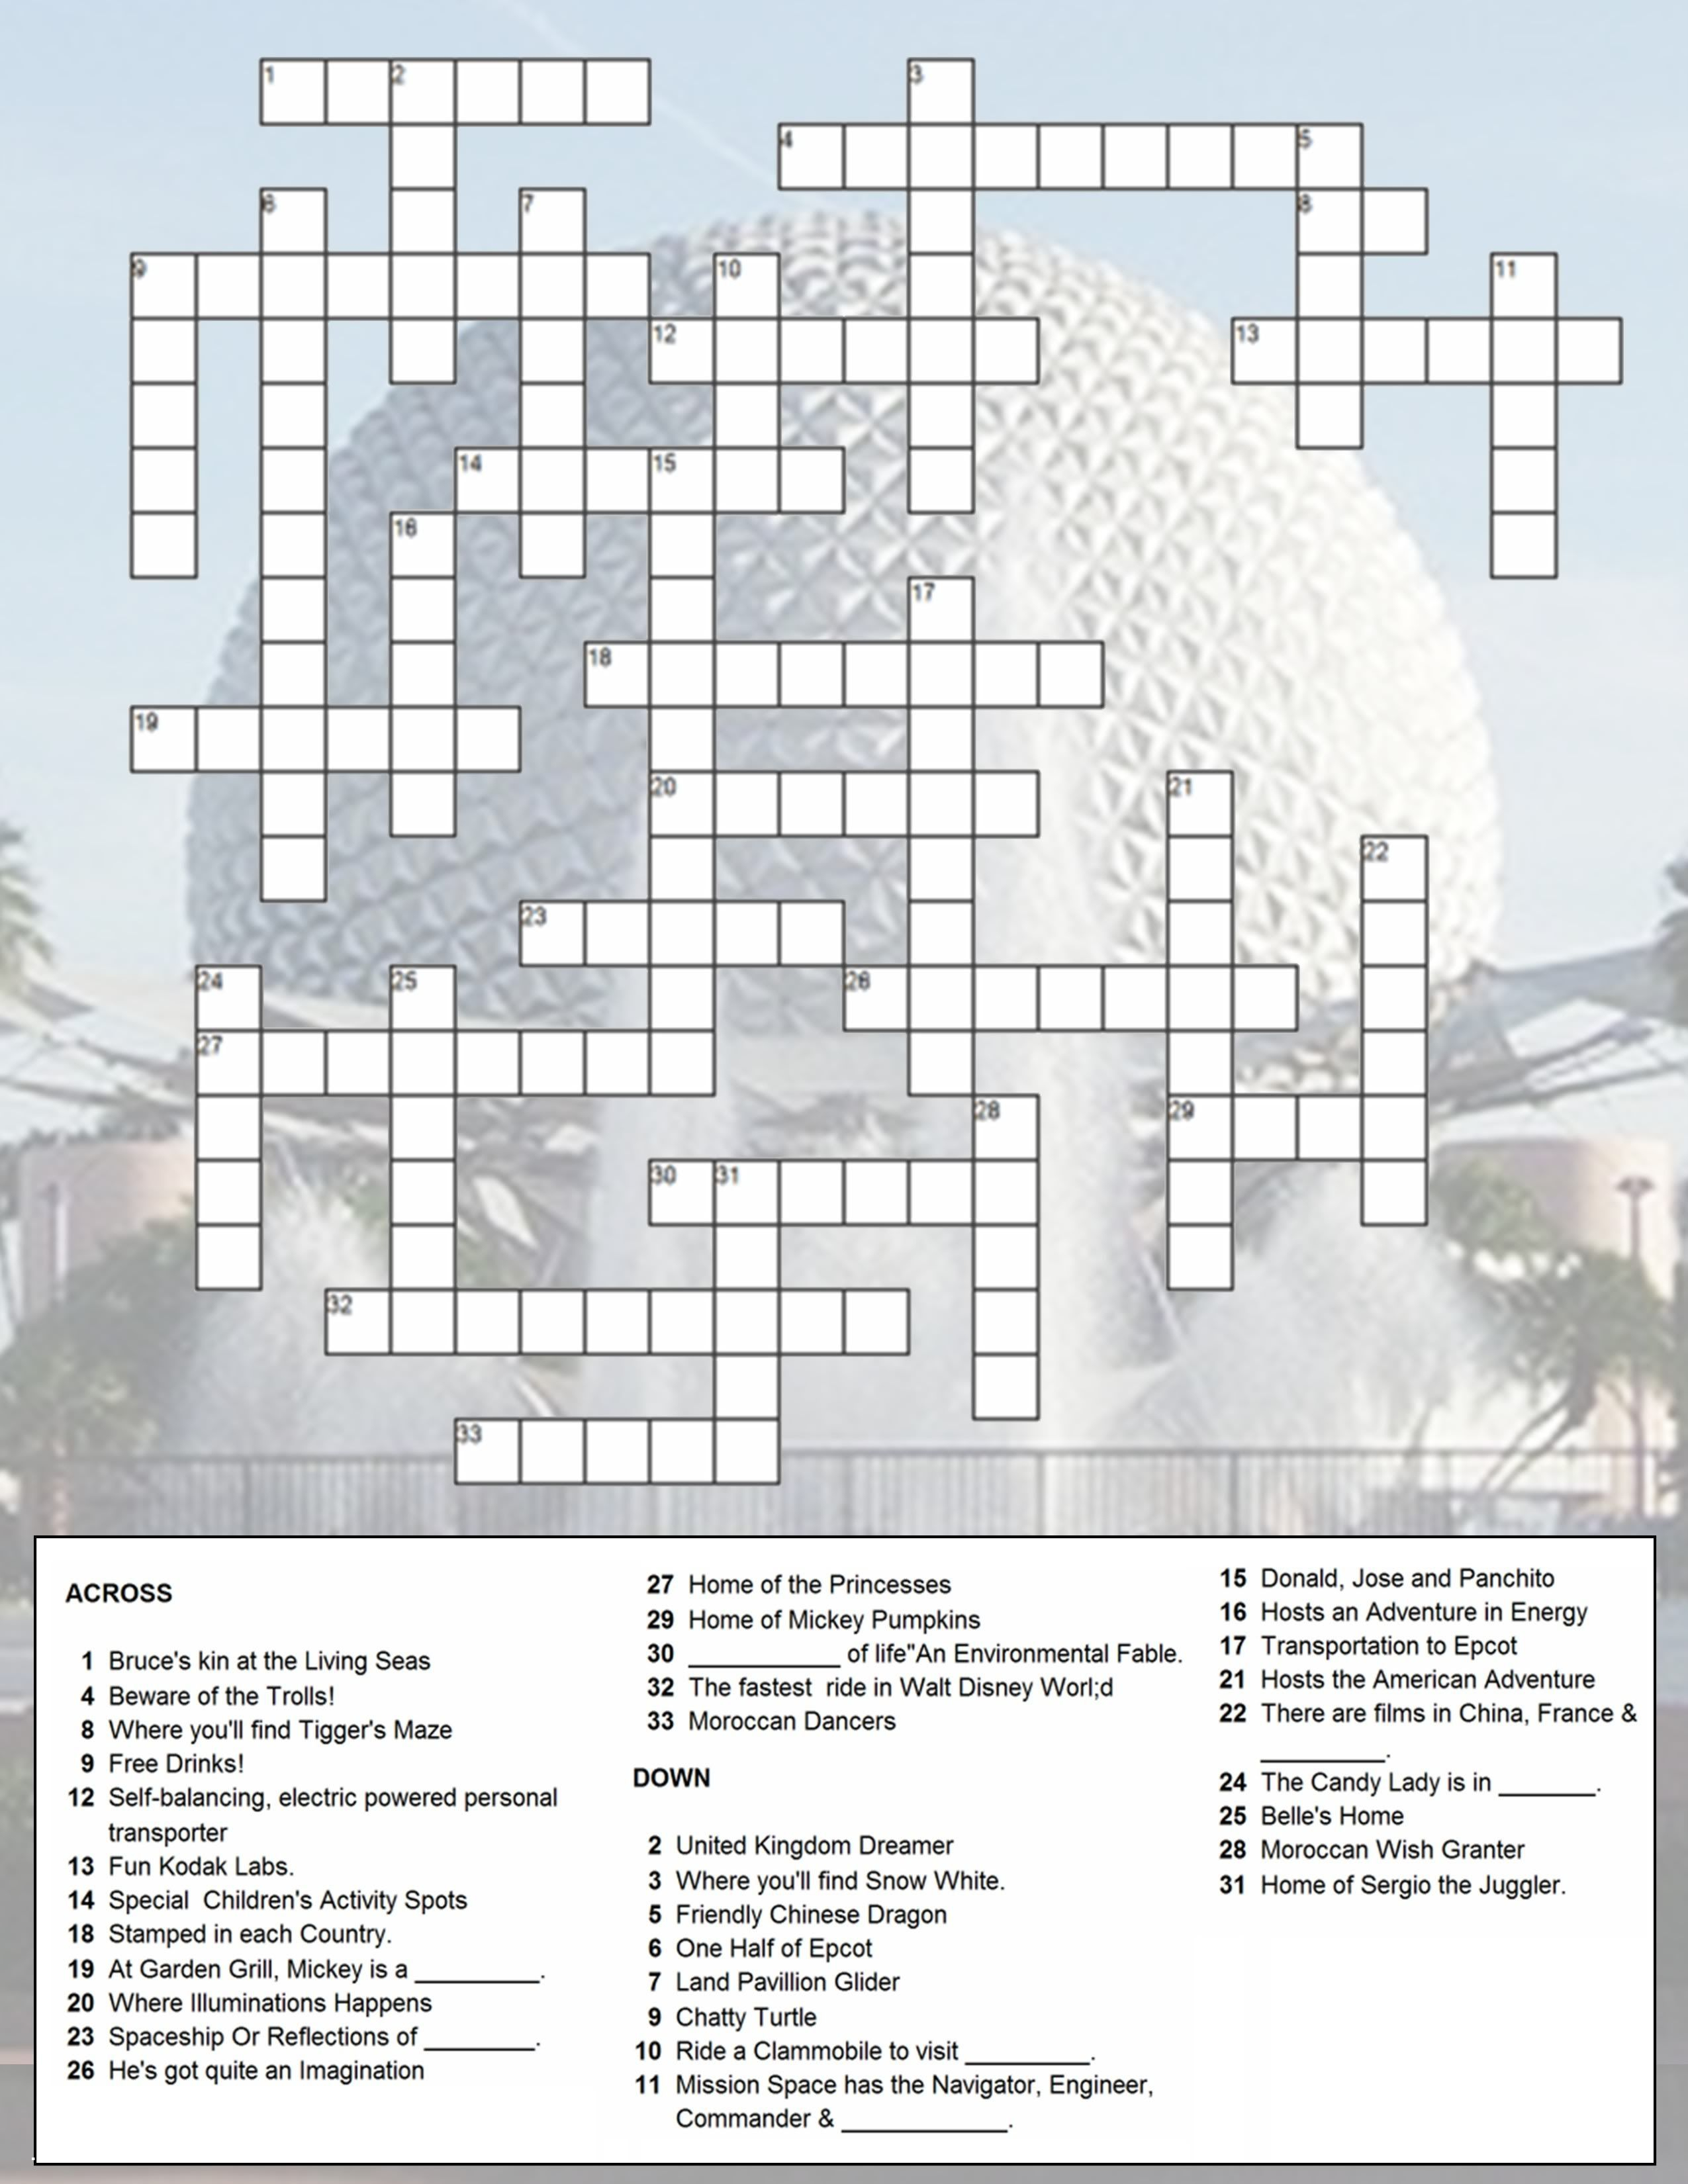 Epcot Crossword Puzzle | Just Because You Have A Fast Passdoesn't - Printable Crossword Puzzles Disney